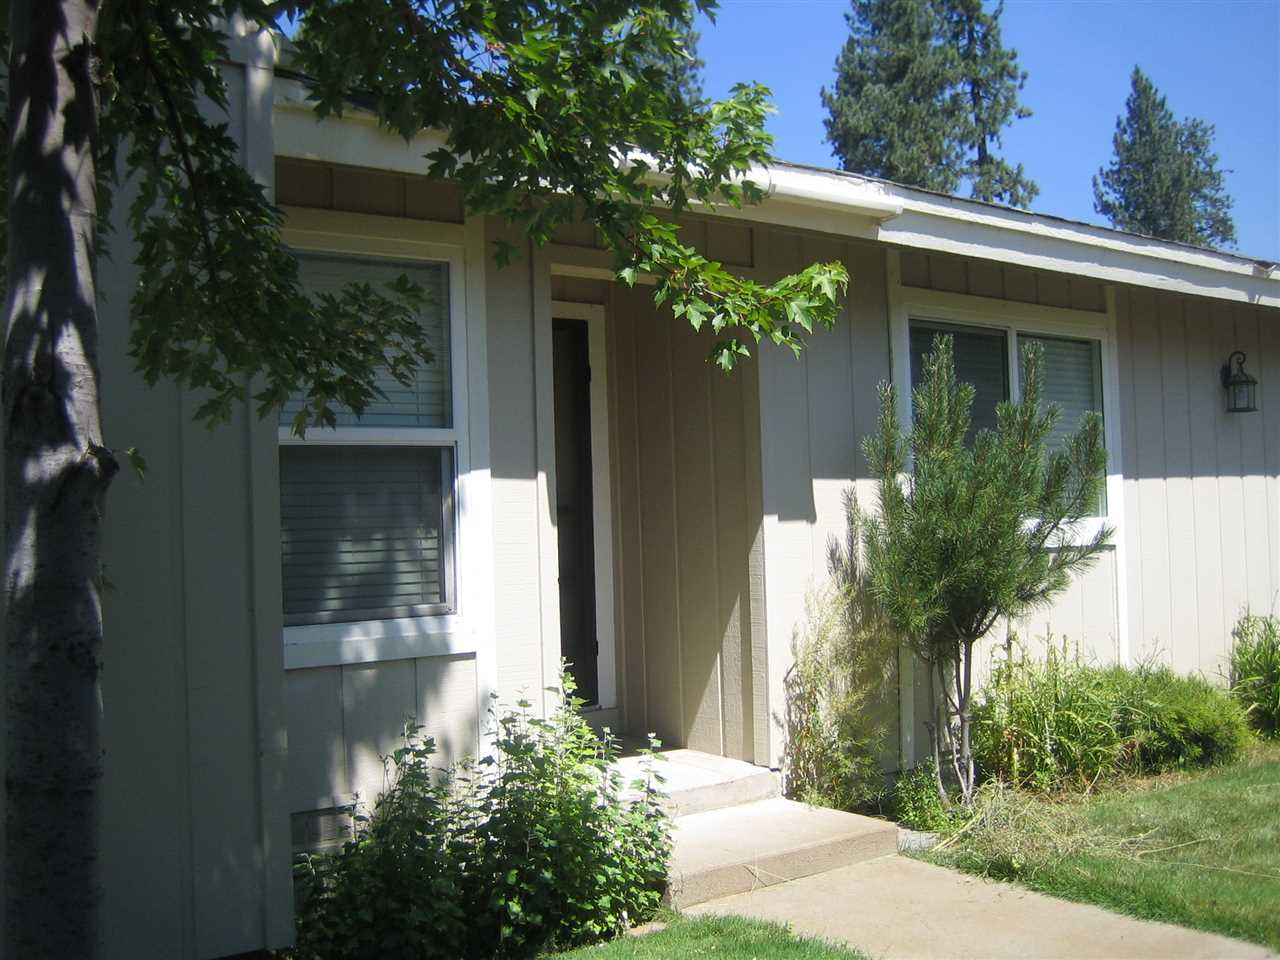 Condo / Townhouse for Active at 69 W Ponderosa Drive 69 W Ponderosa Drive Blairsden, California 96103 United States